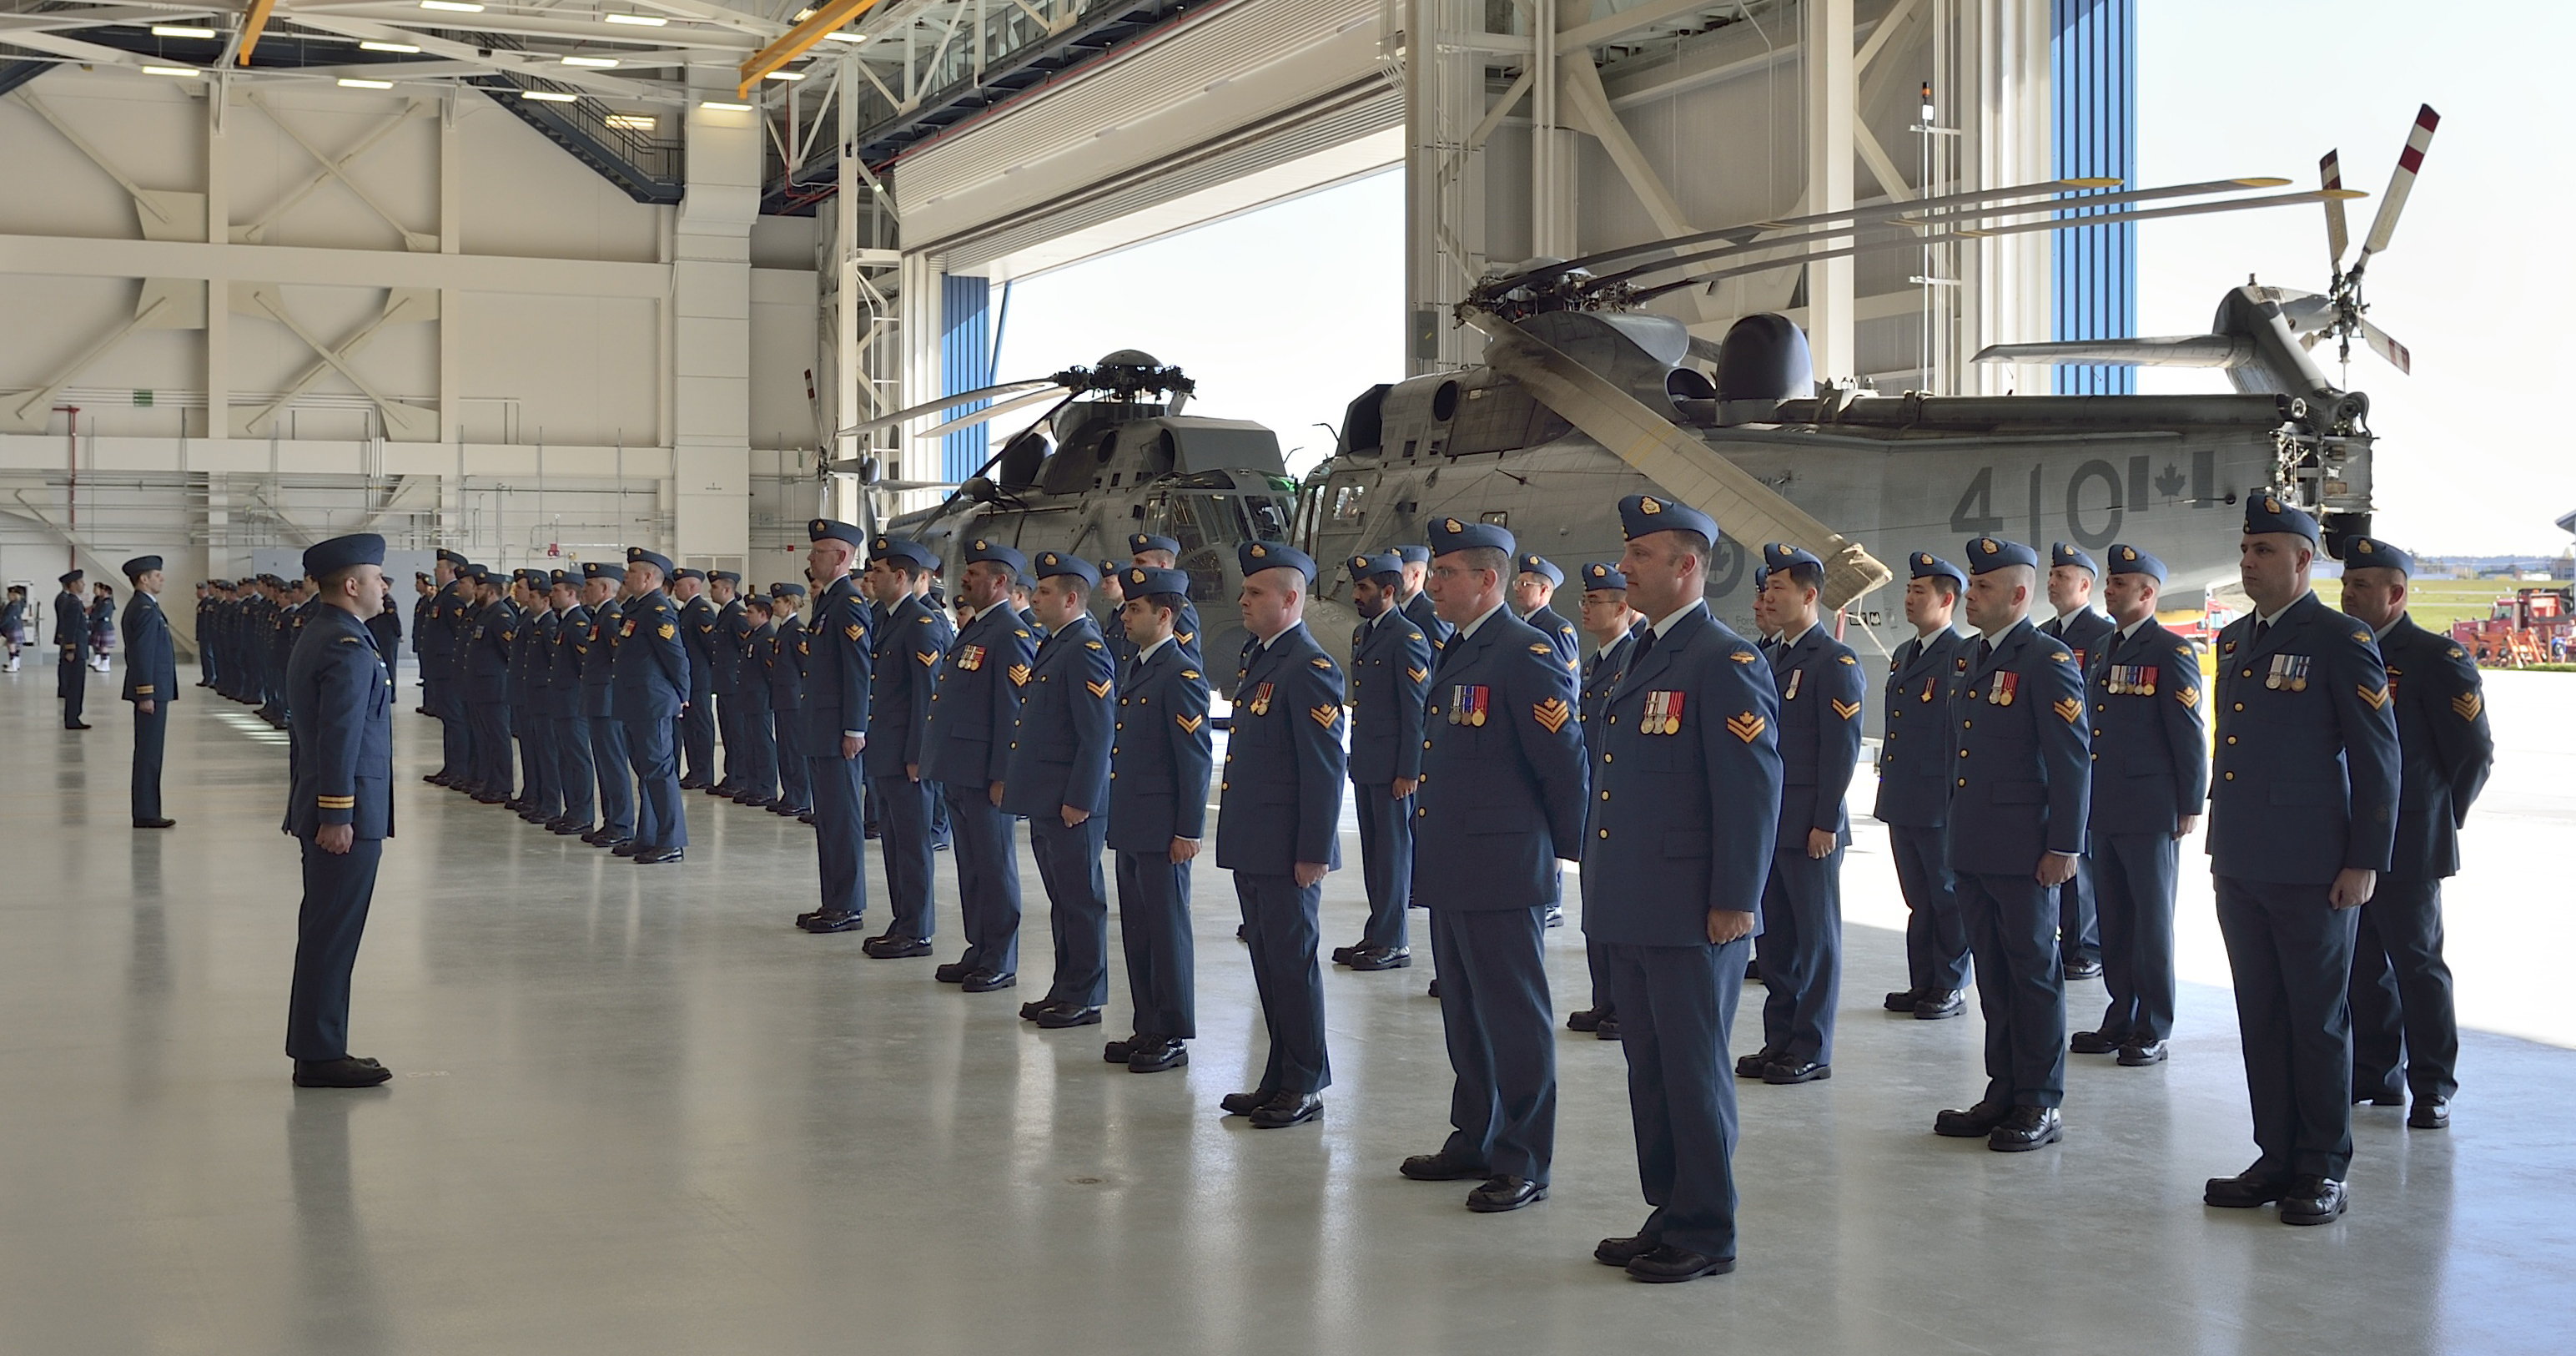 Members of 443 Maritime Helicopter Squadron stand on parade during a ceremony to mark the official opening and naming of their new hangar facility at the Victoria International Airport on April 9, 2015. The ceremony included a parade to celebrate the consecration of a new squadron Colour and the unveiling of the hangar's name.